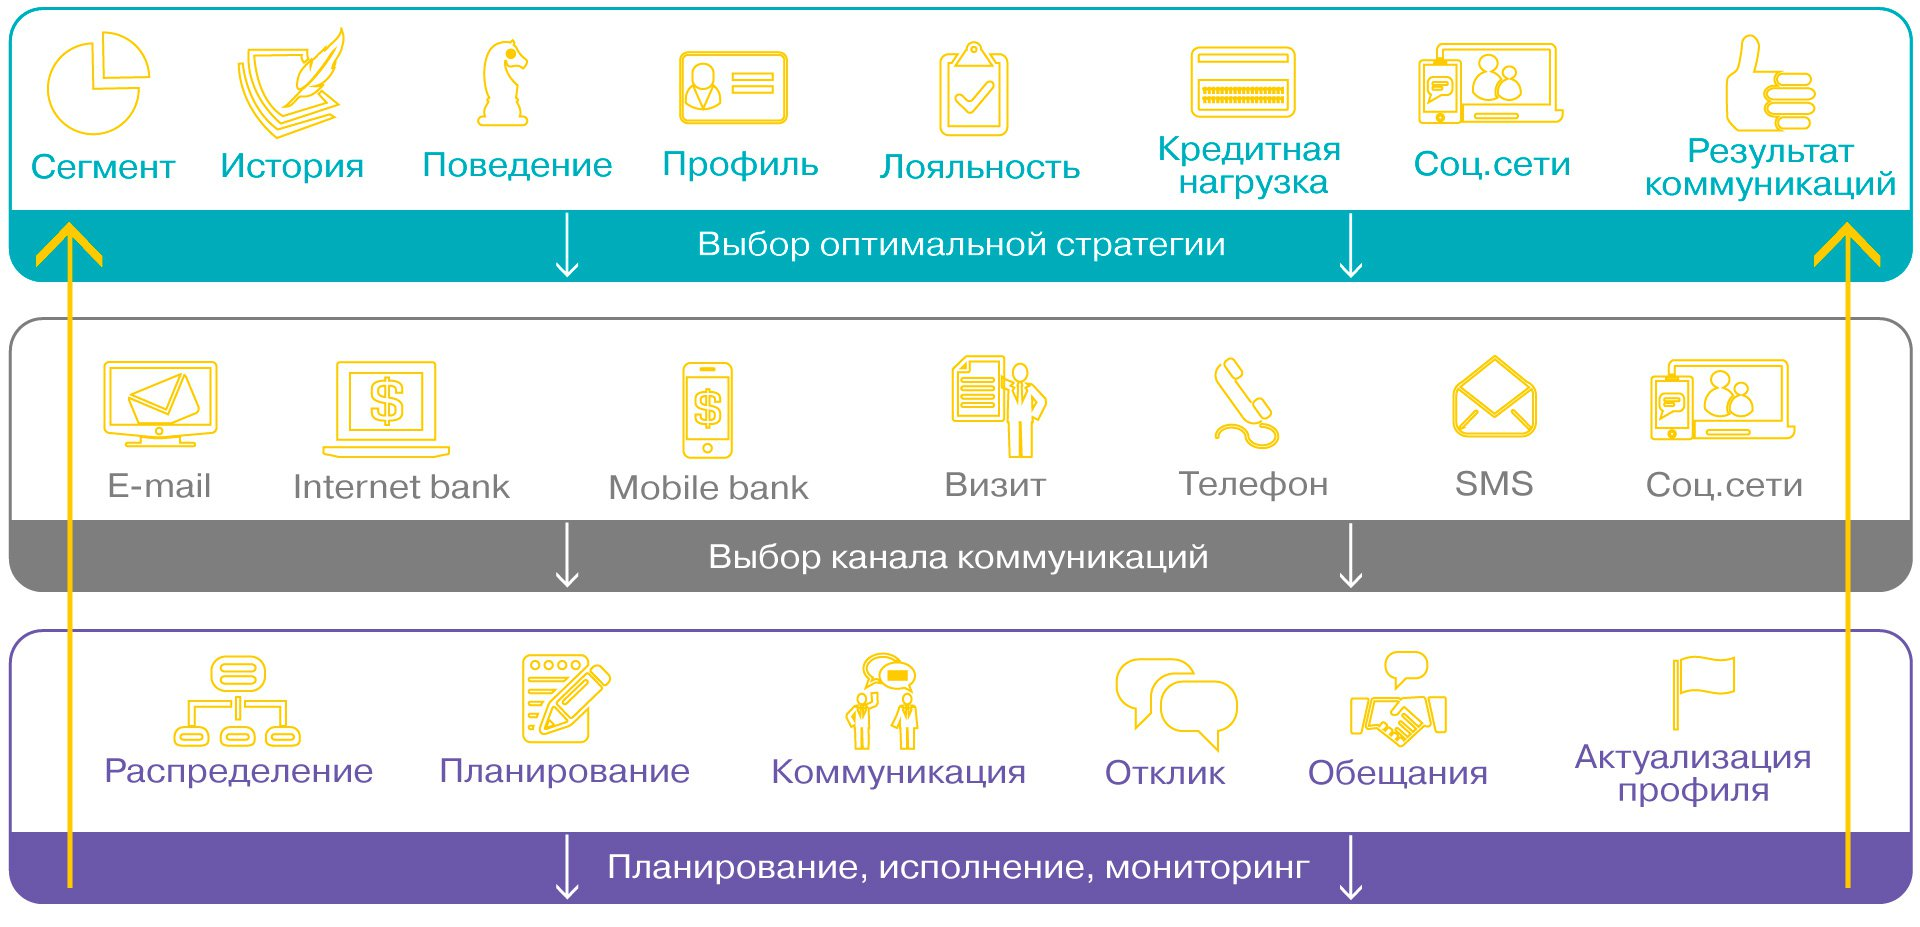 Схема решения Navicon Omni-Channel Banking | Управление коммуникациями с клиентами банка